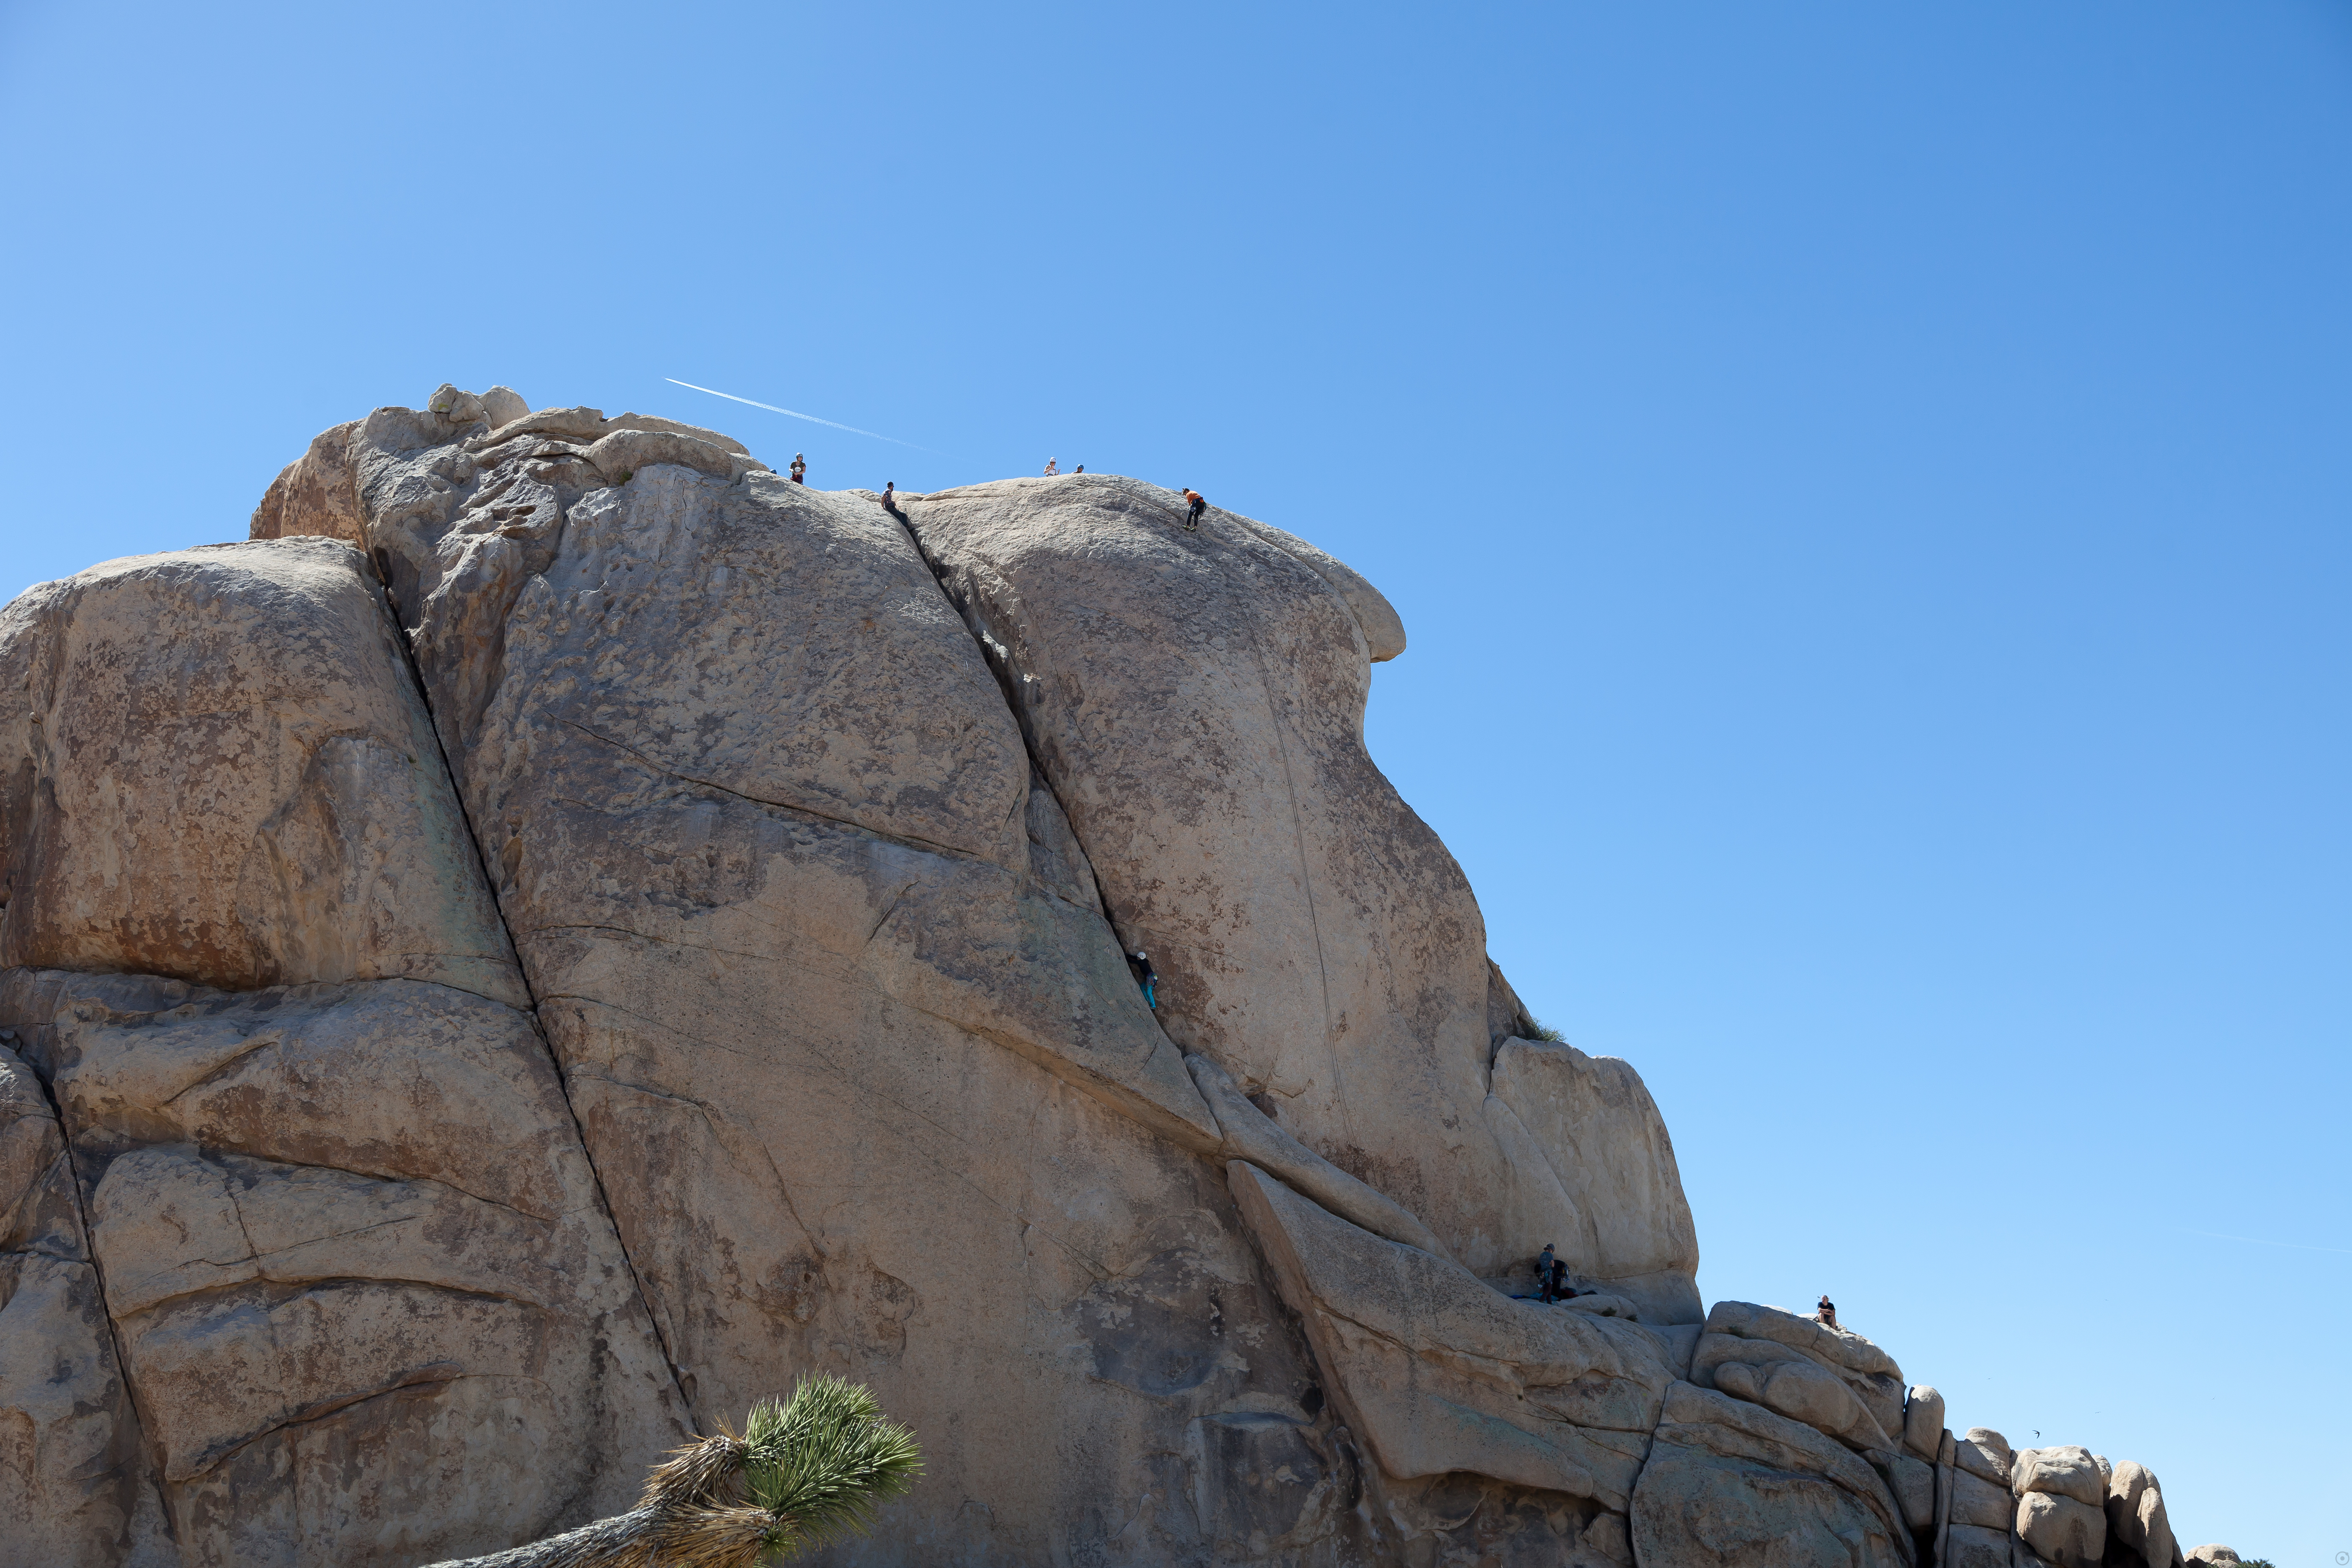 climbers at the top of Intersection Rock in Joshua Tree National Park